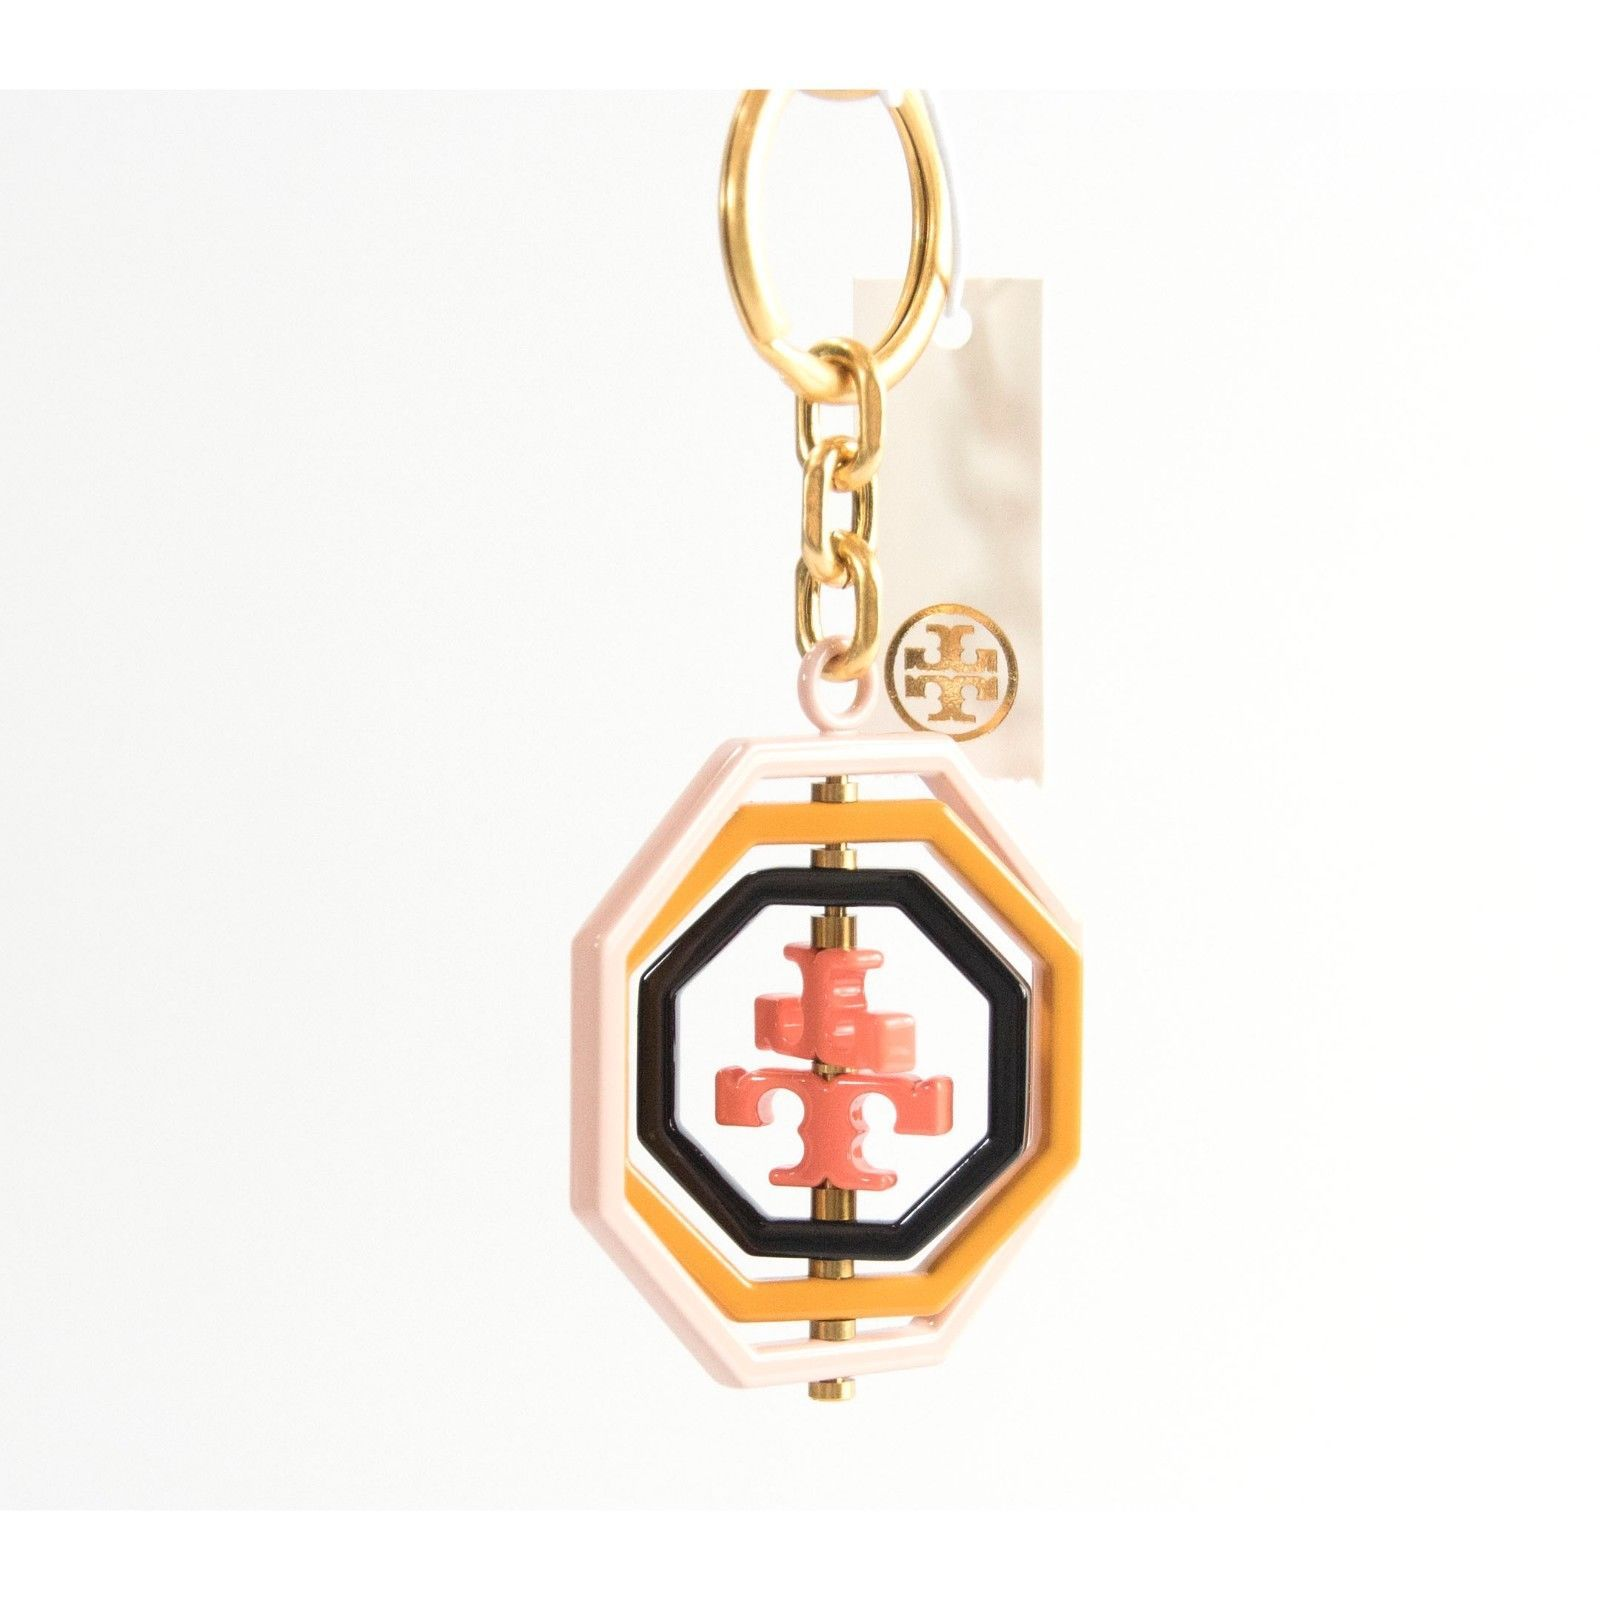 Tory Burch Octagon Acrylic Enamel Spinning Large Bag Charm Key Chain NWT image 3